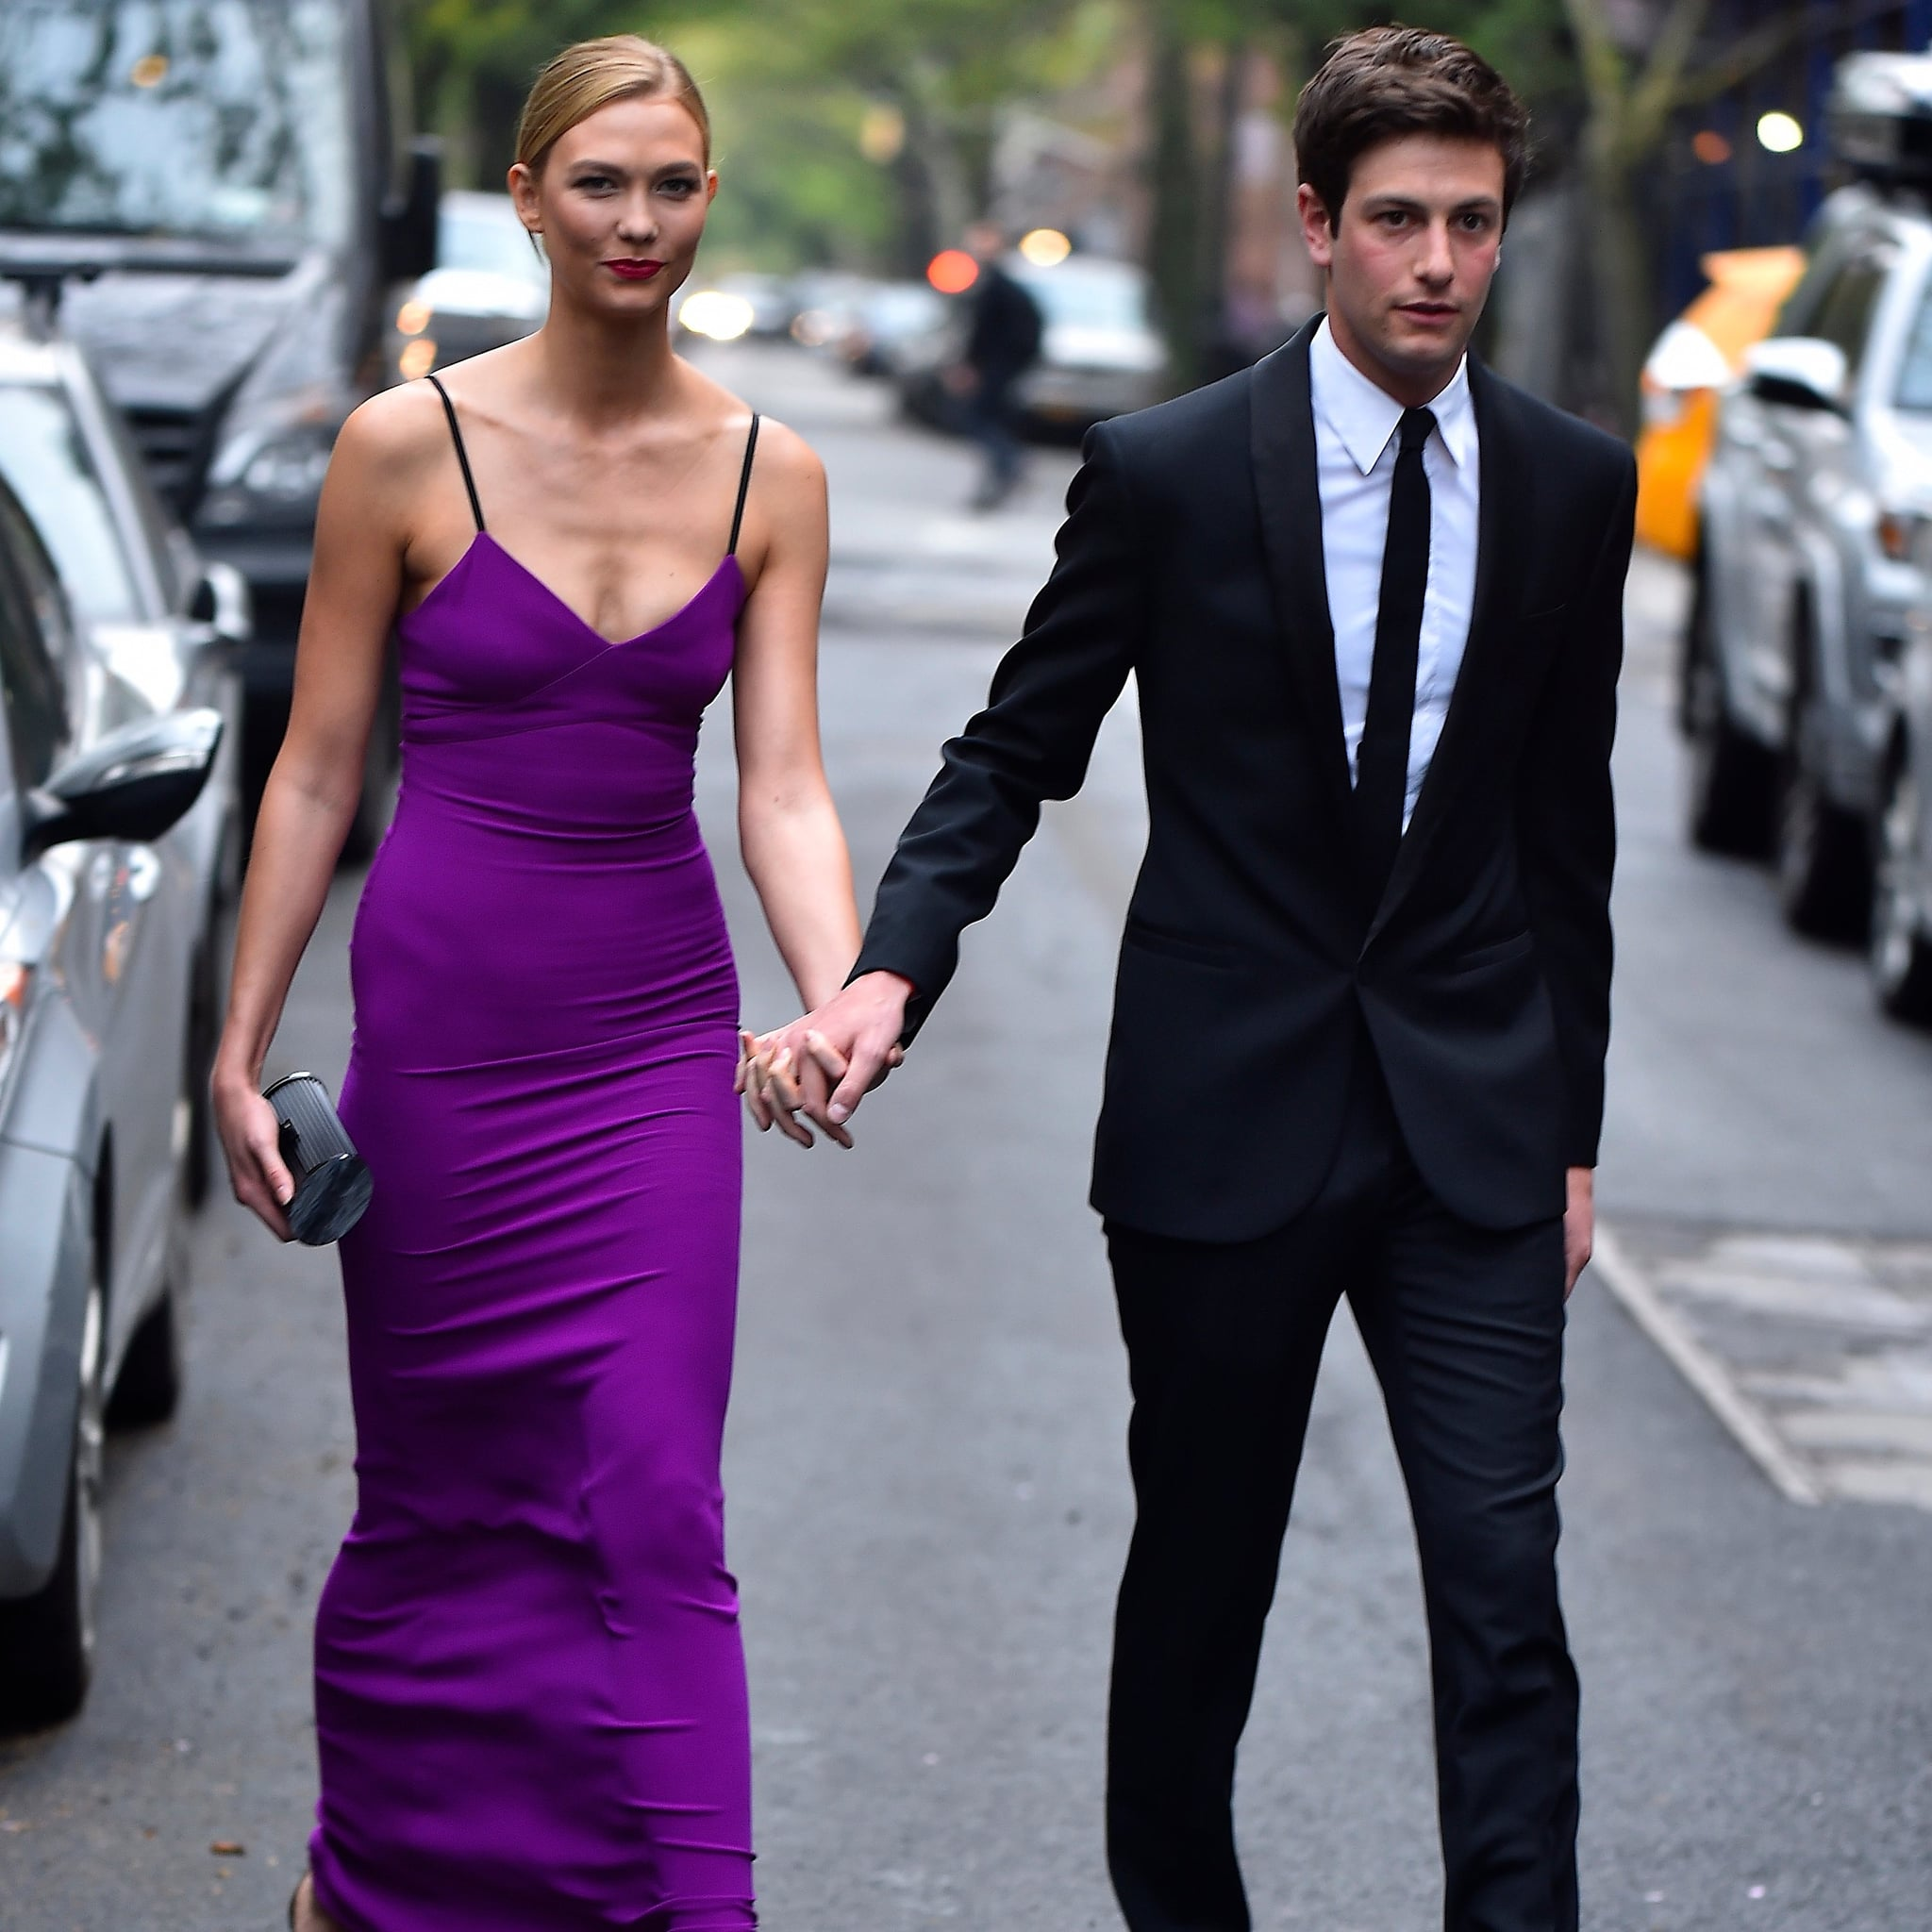 Is karlie kloss dating joshua kushner